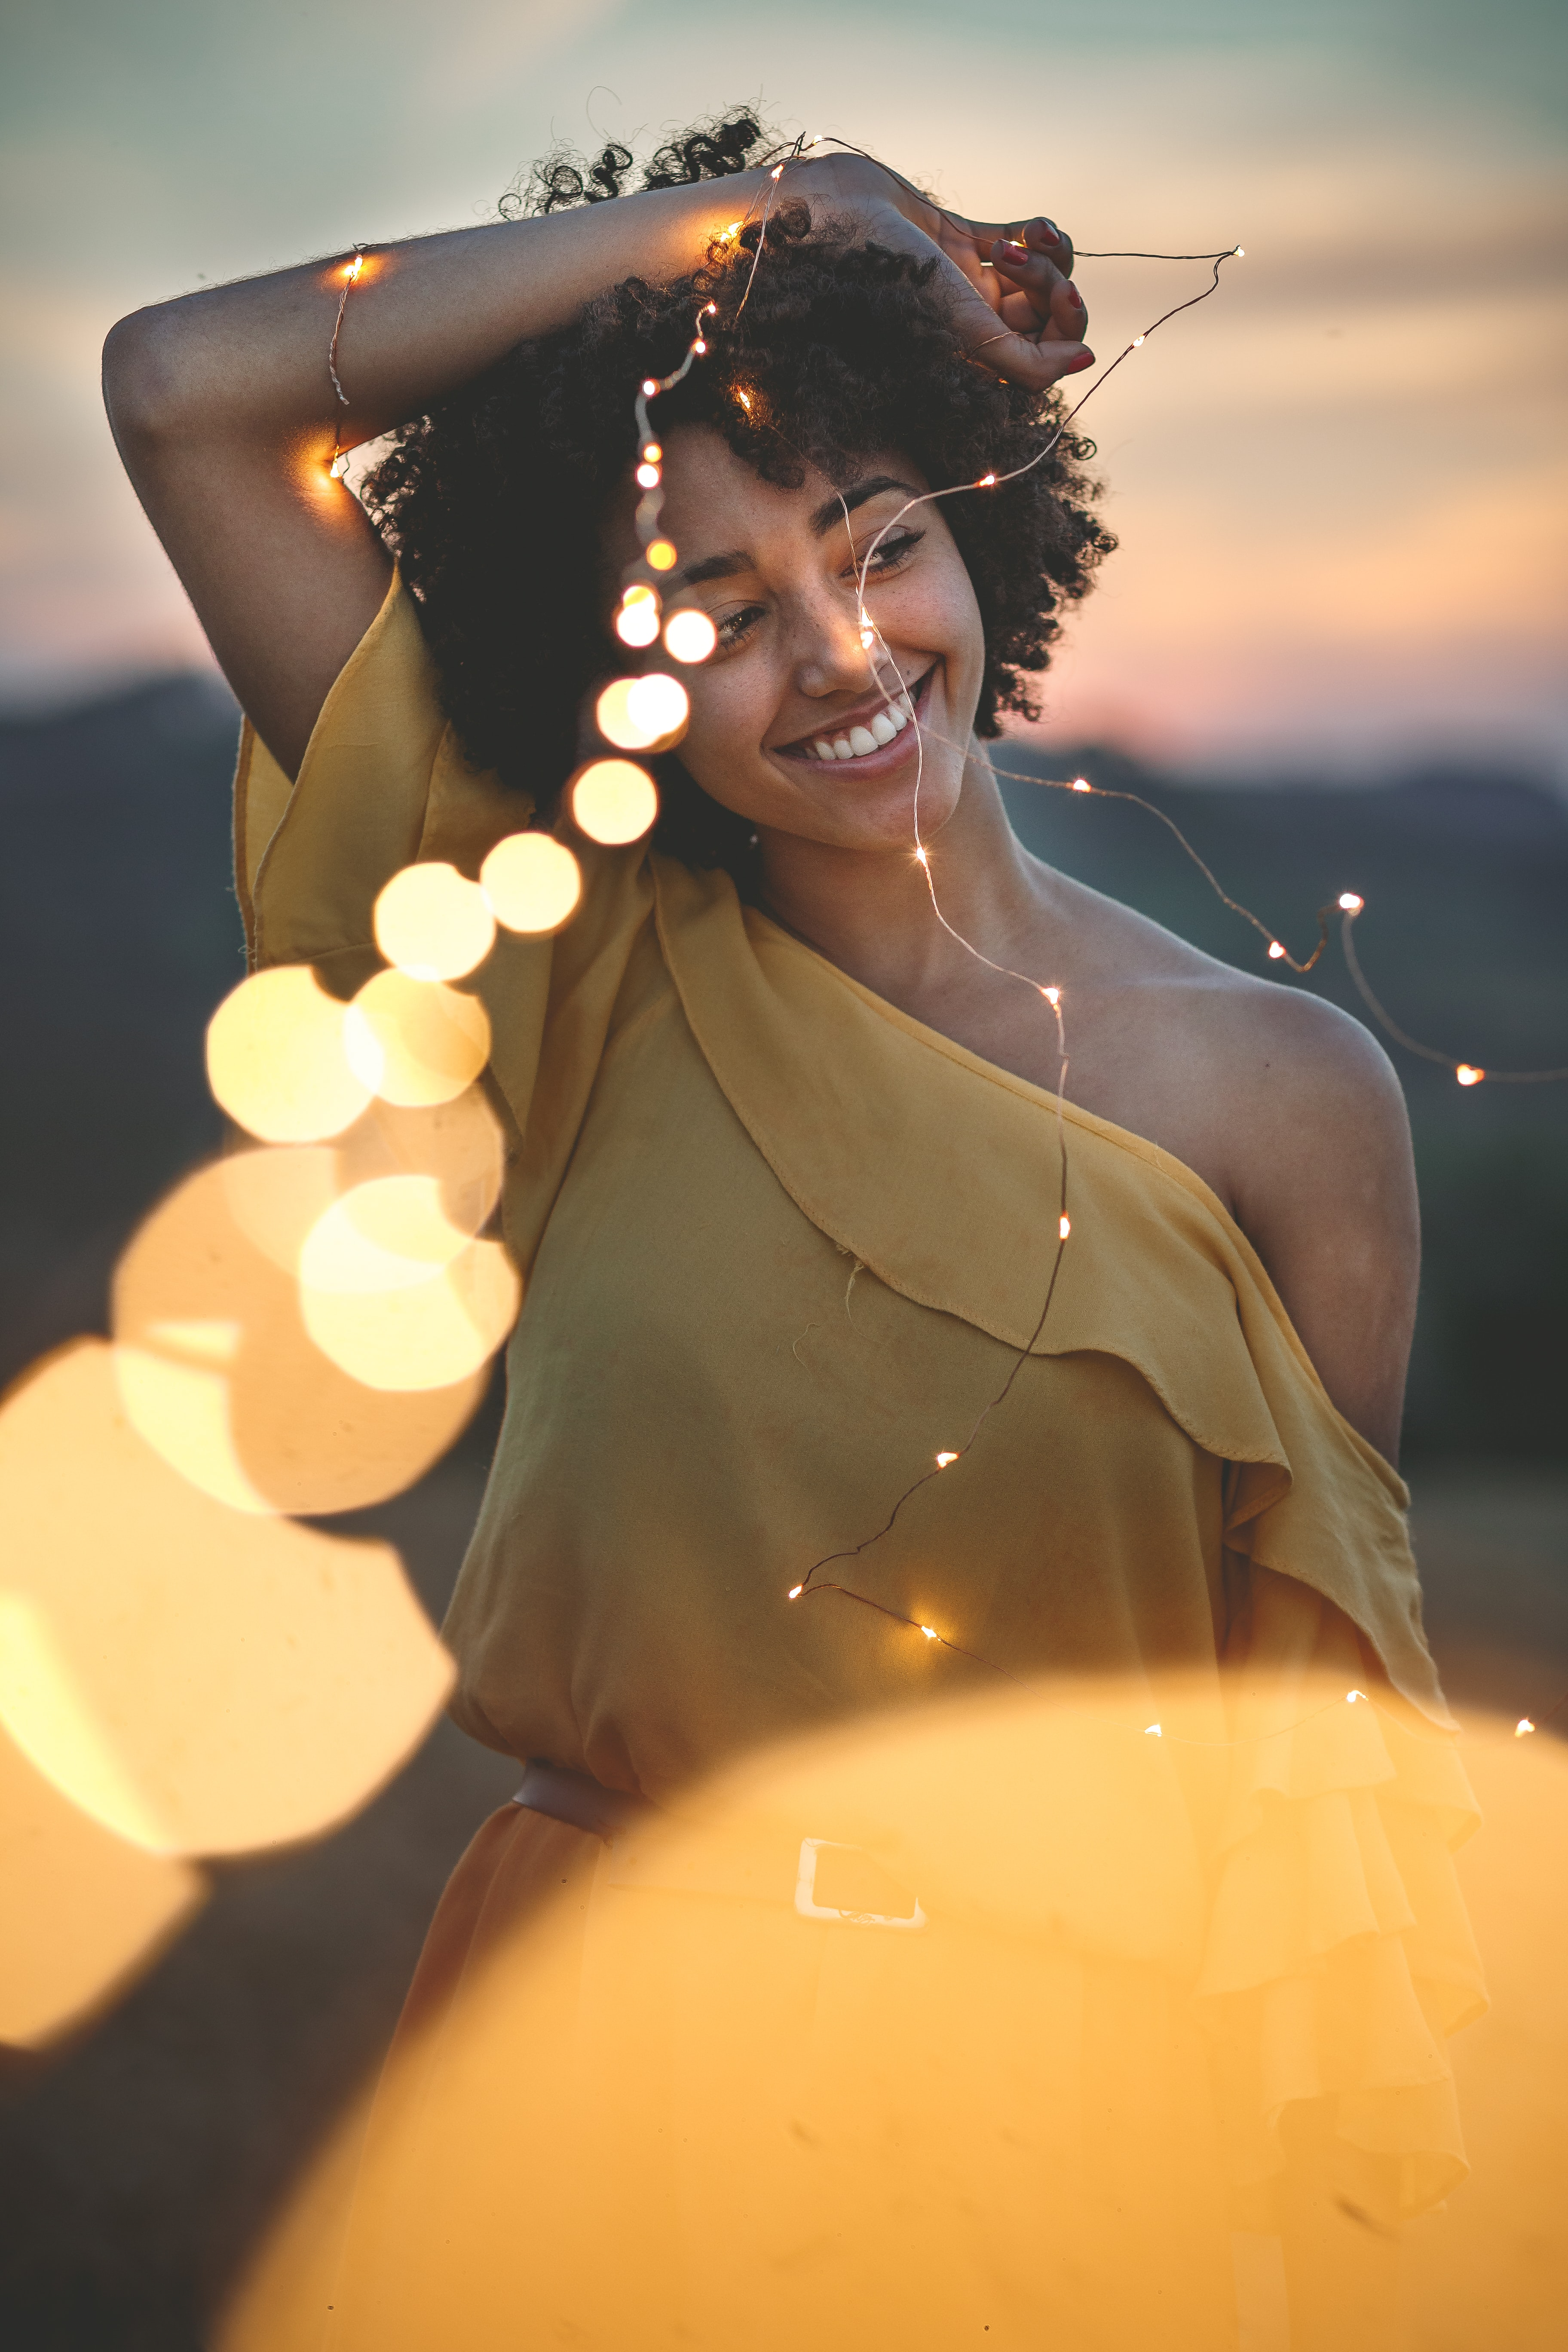 woman smiling while holding string lights